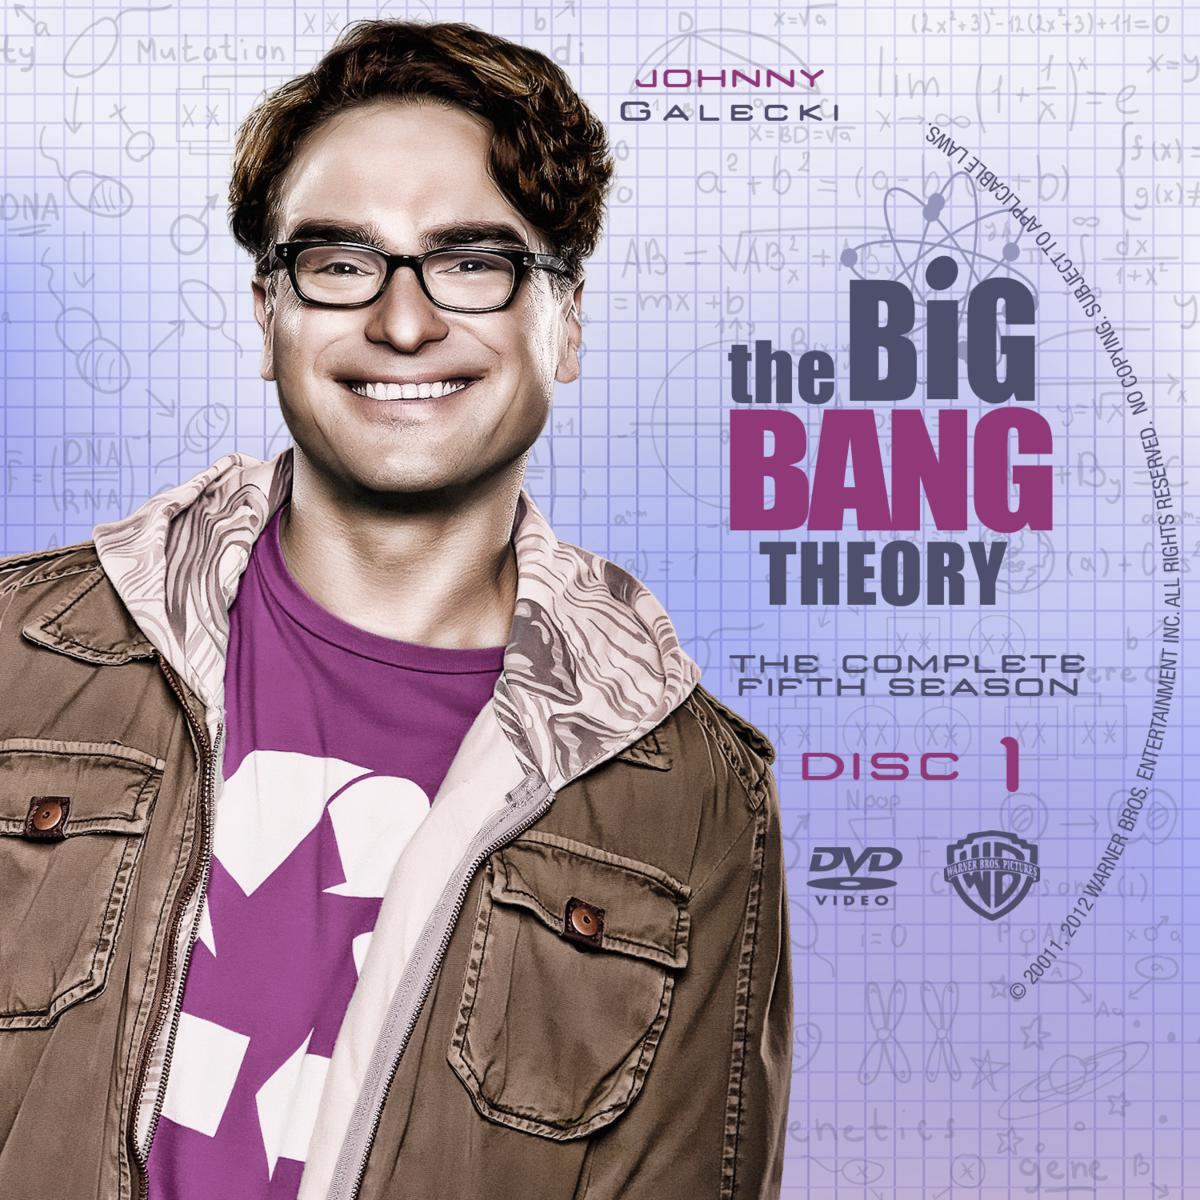 Label The Big Bang Theory The Complete Fifth Season